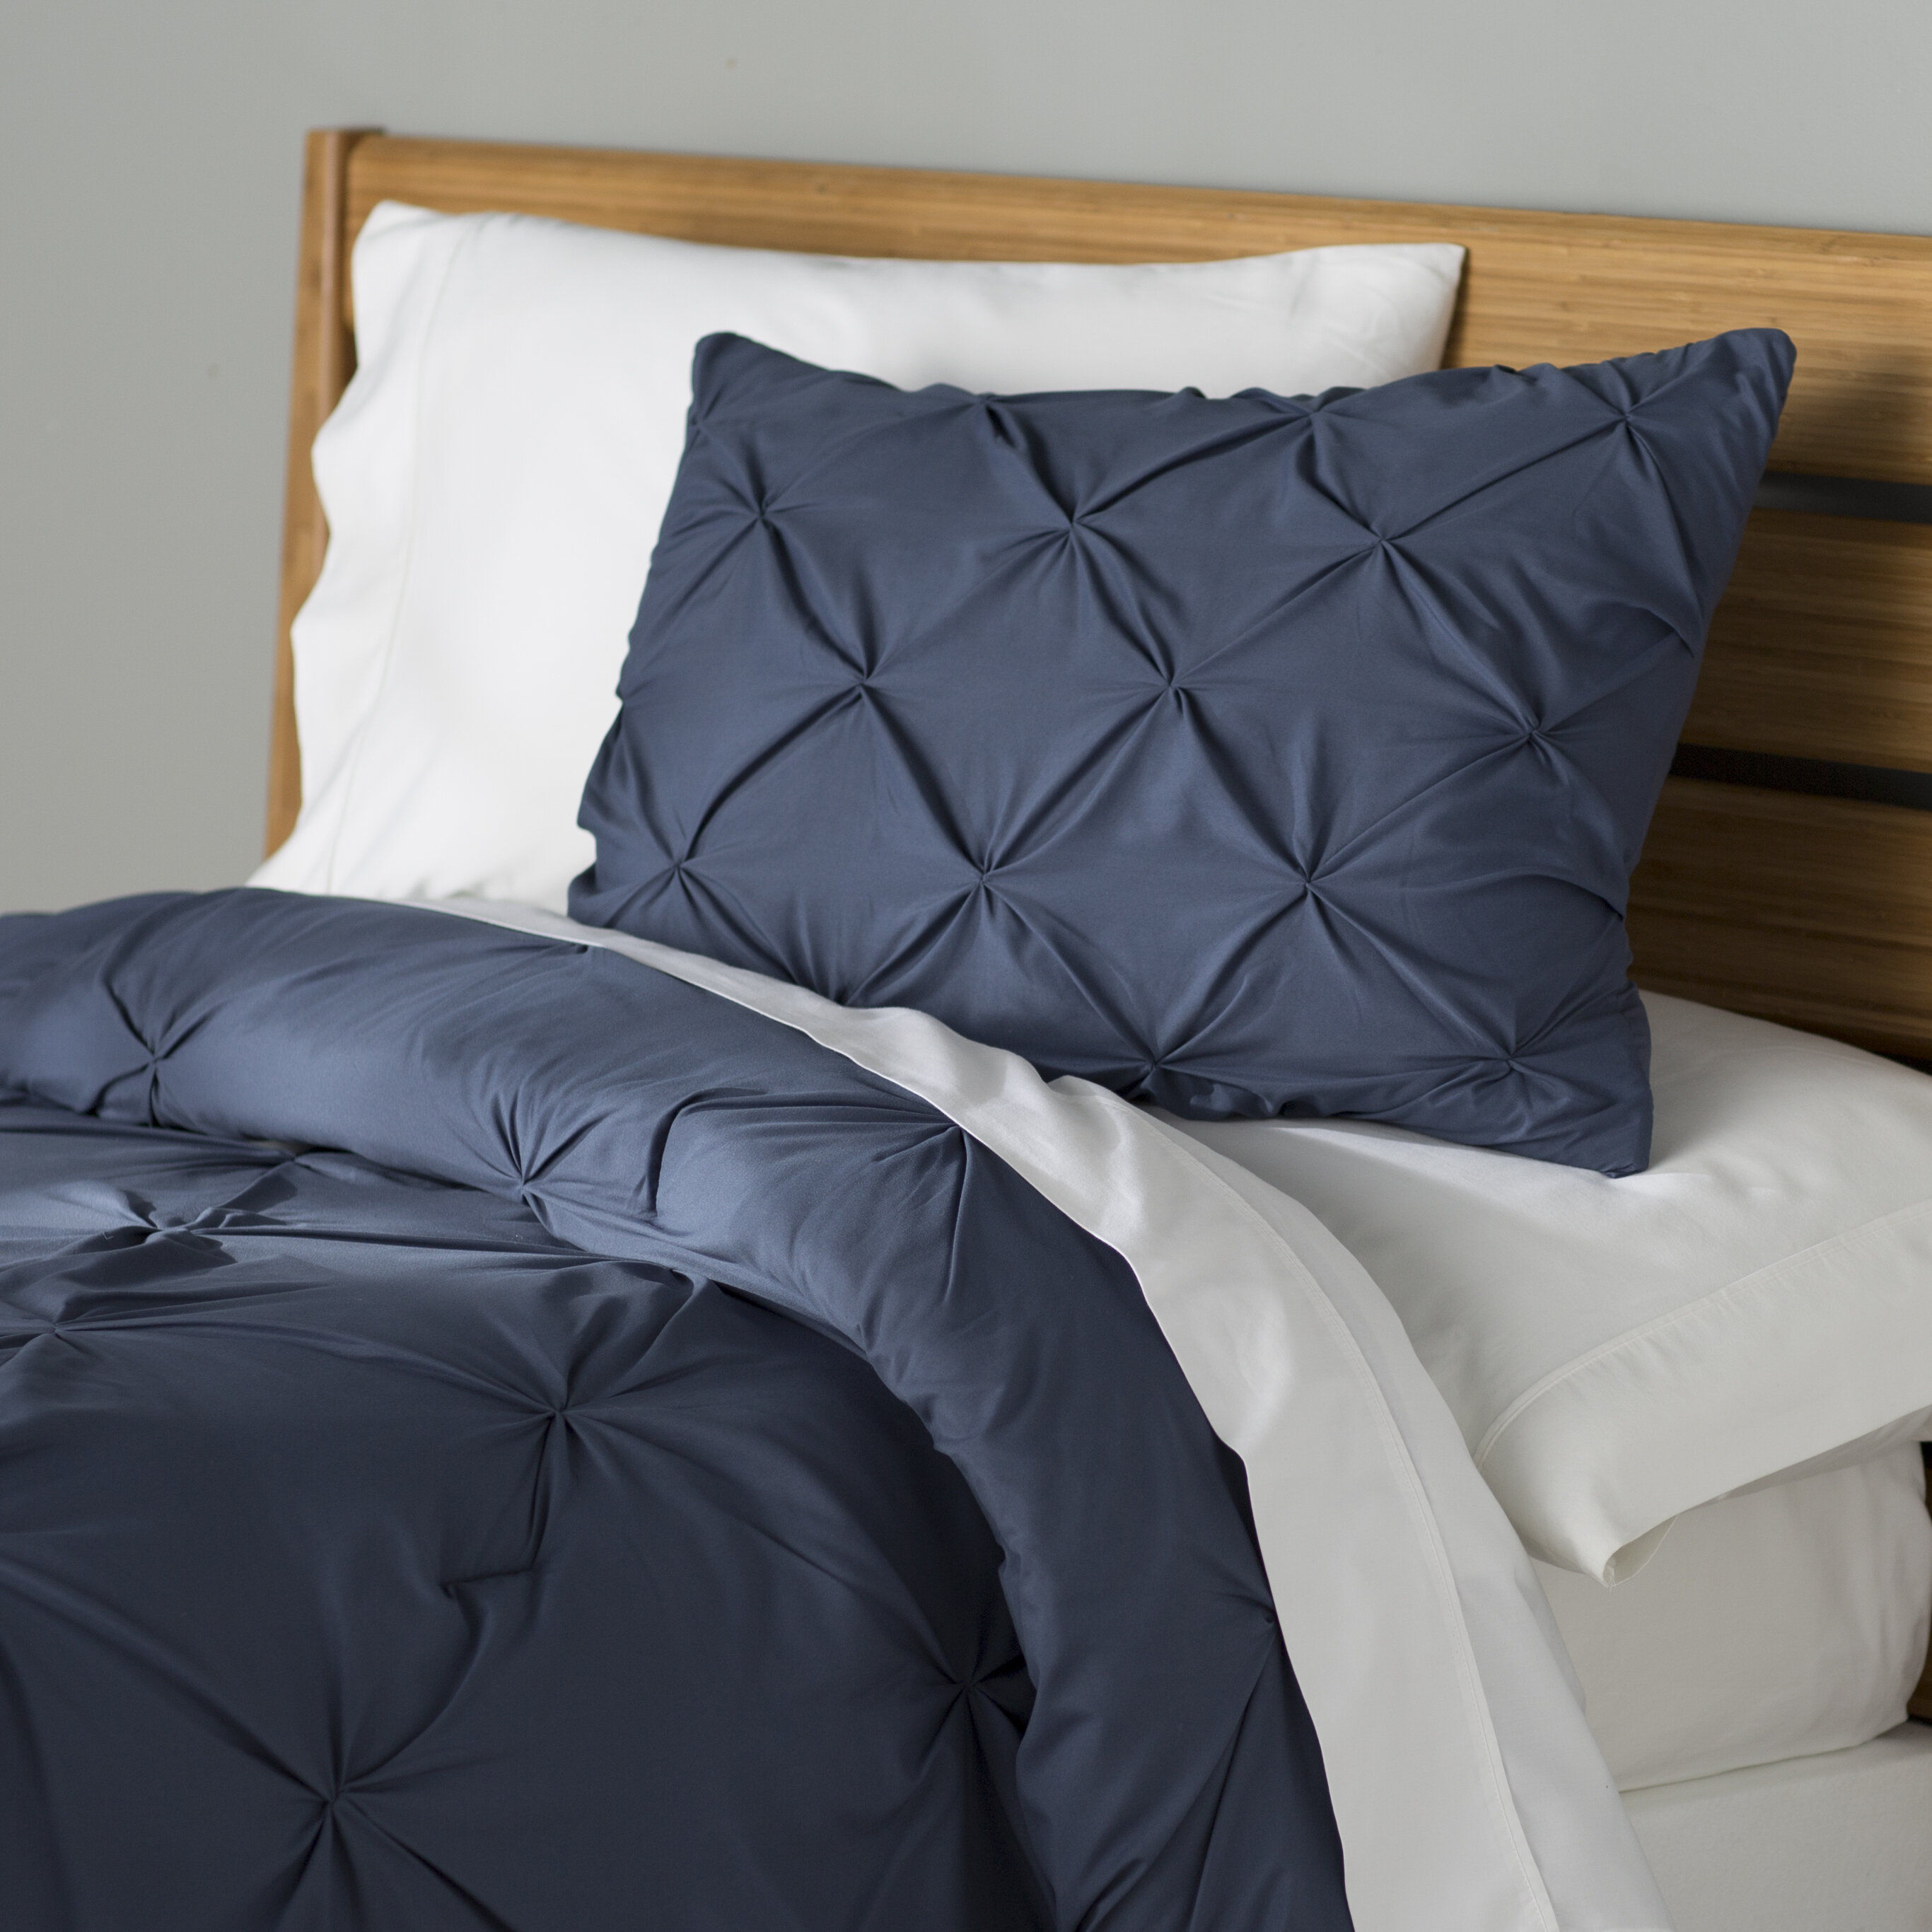 Blue Comforter Bedding Free Shipping Over 35 Wayfair